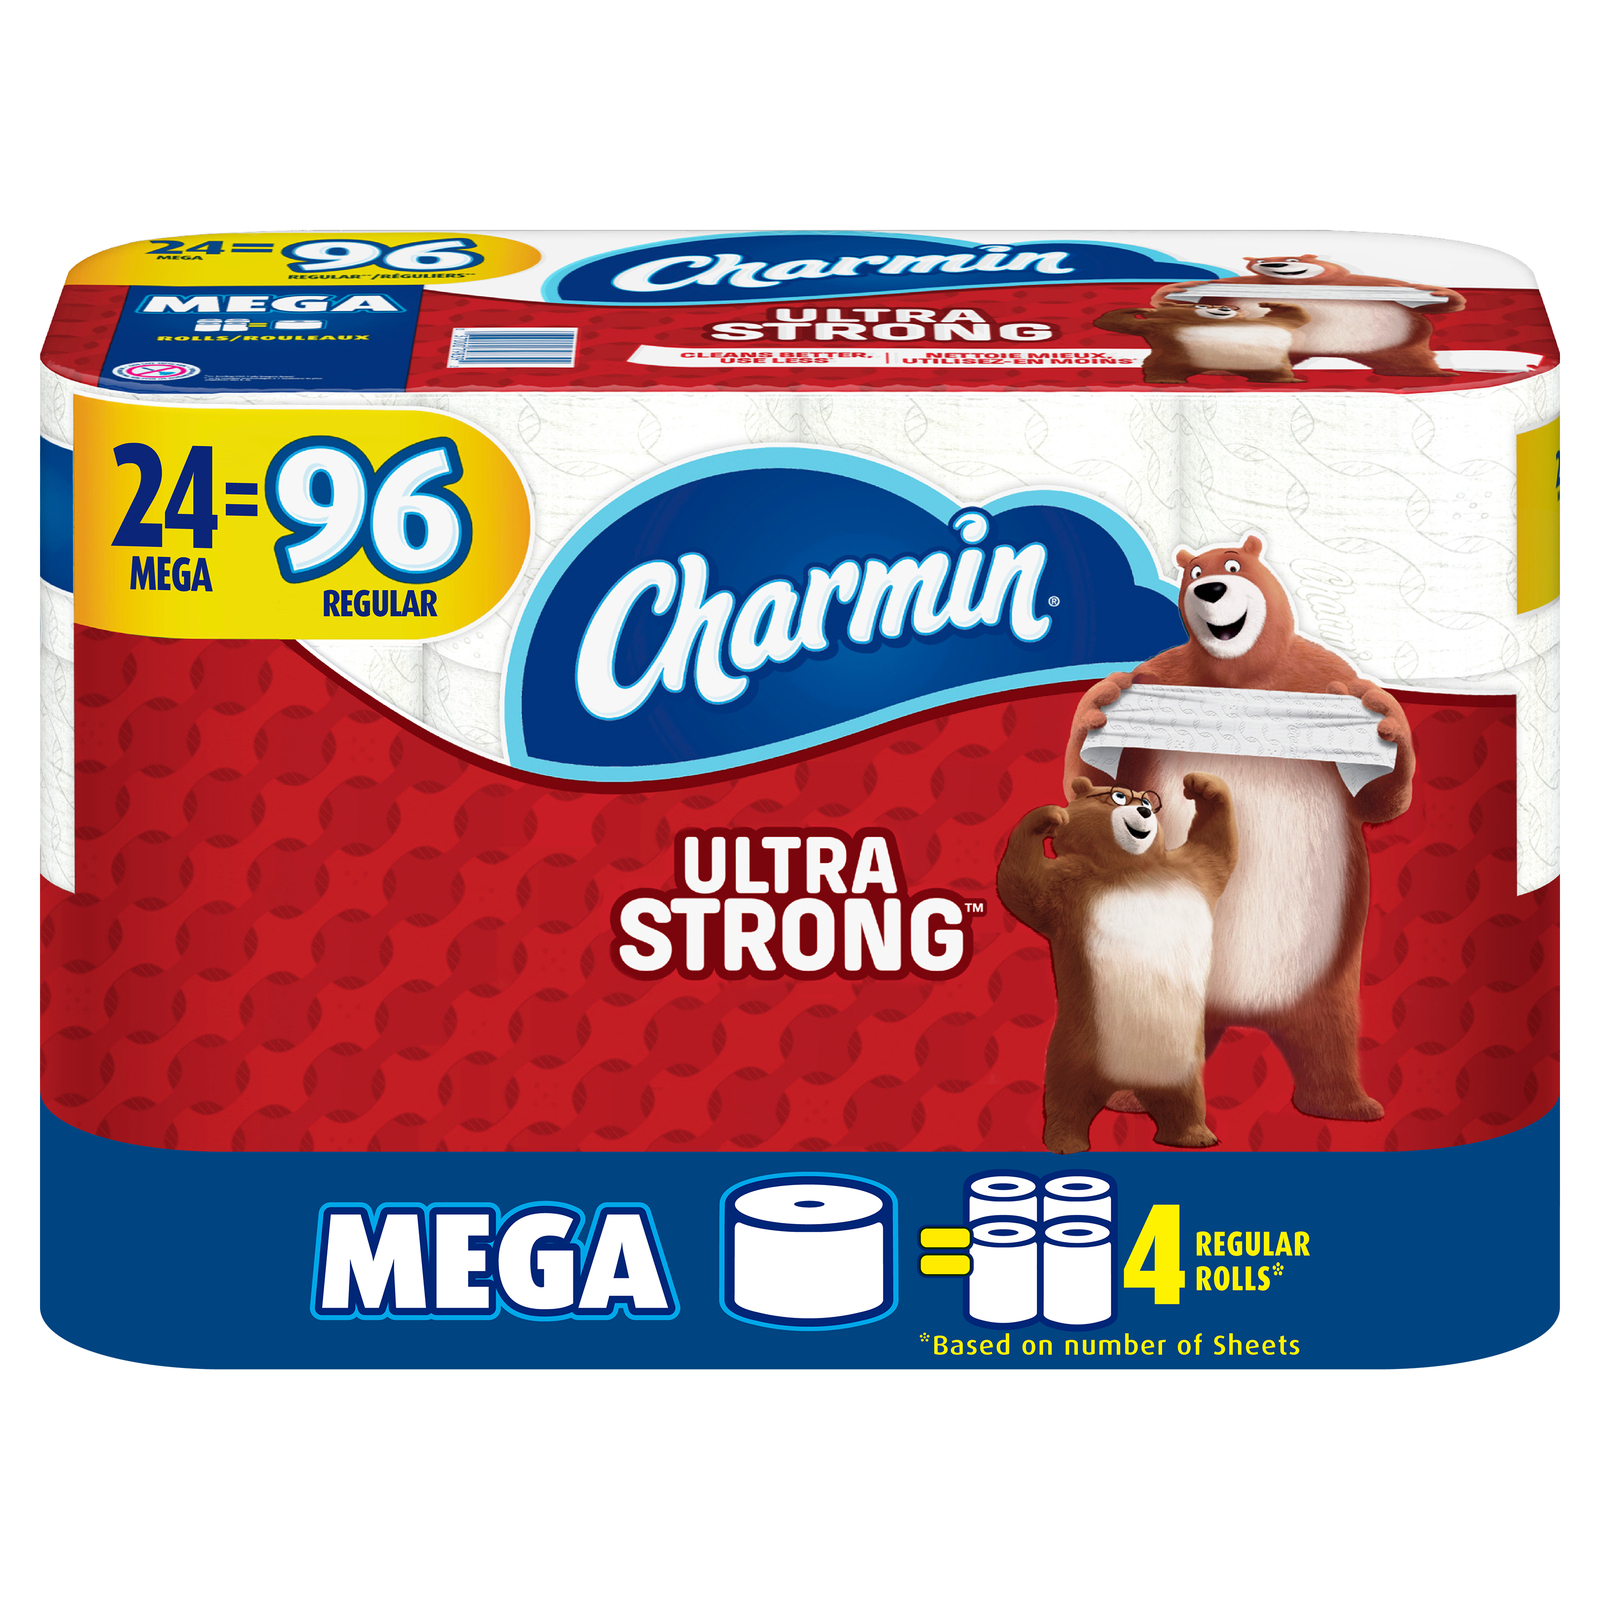 Primary image for CHARMIN Ultra Strong toilet paper 24 MEGA ROLLS = 96 Regular Rolls pack